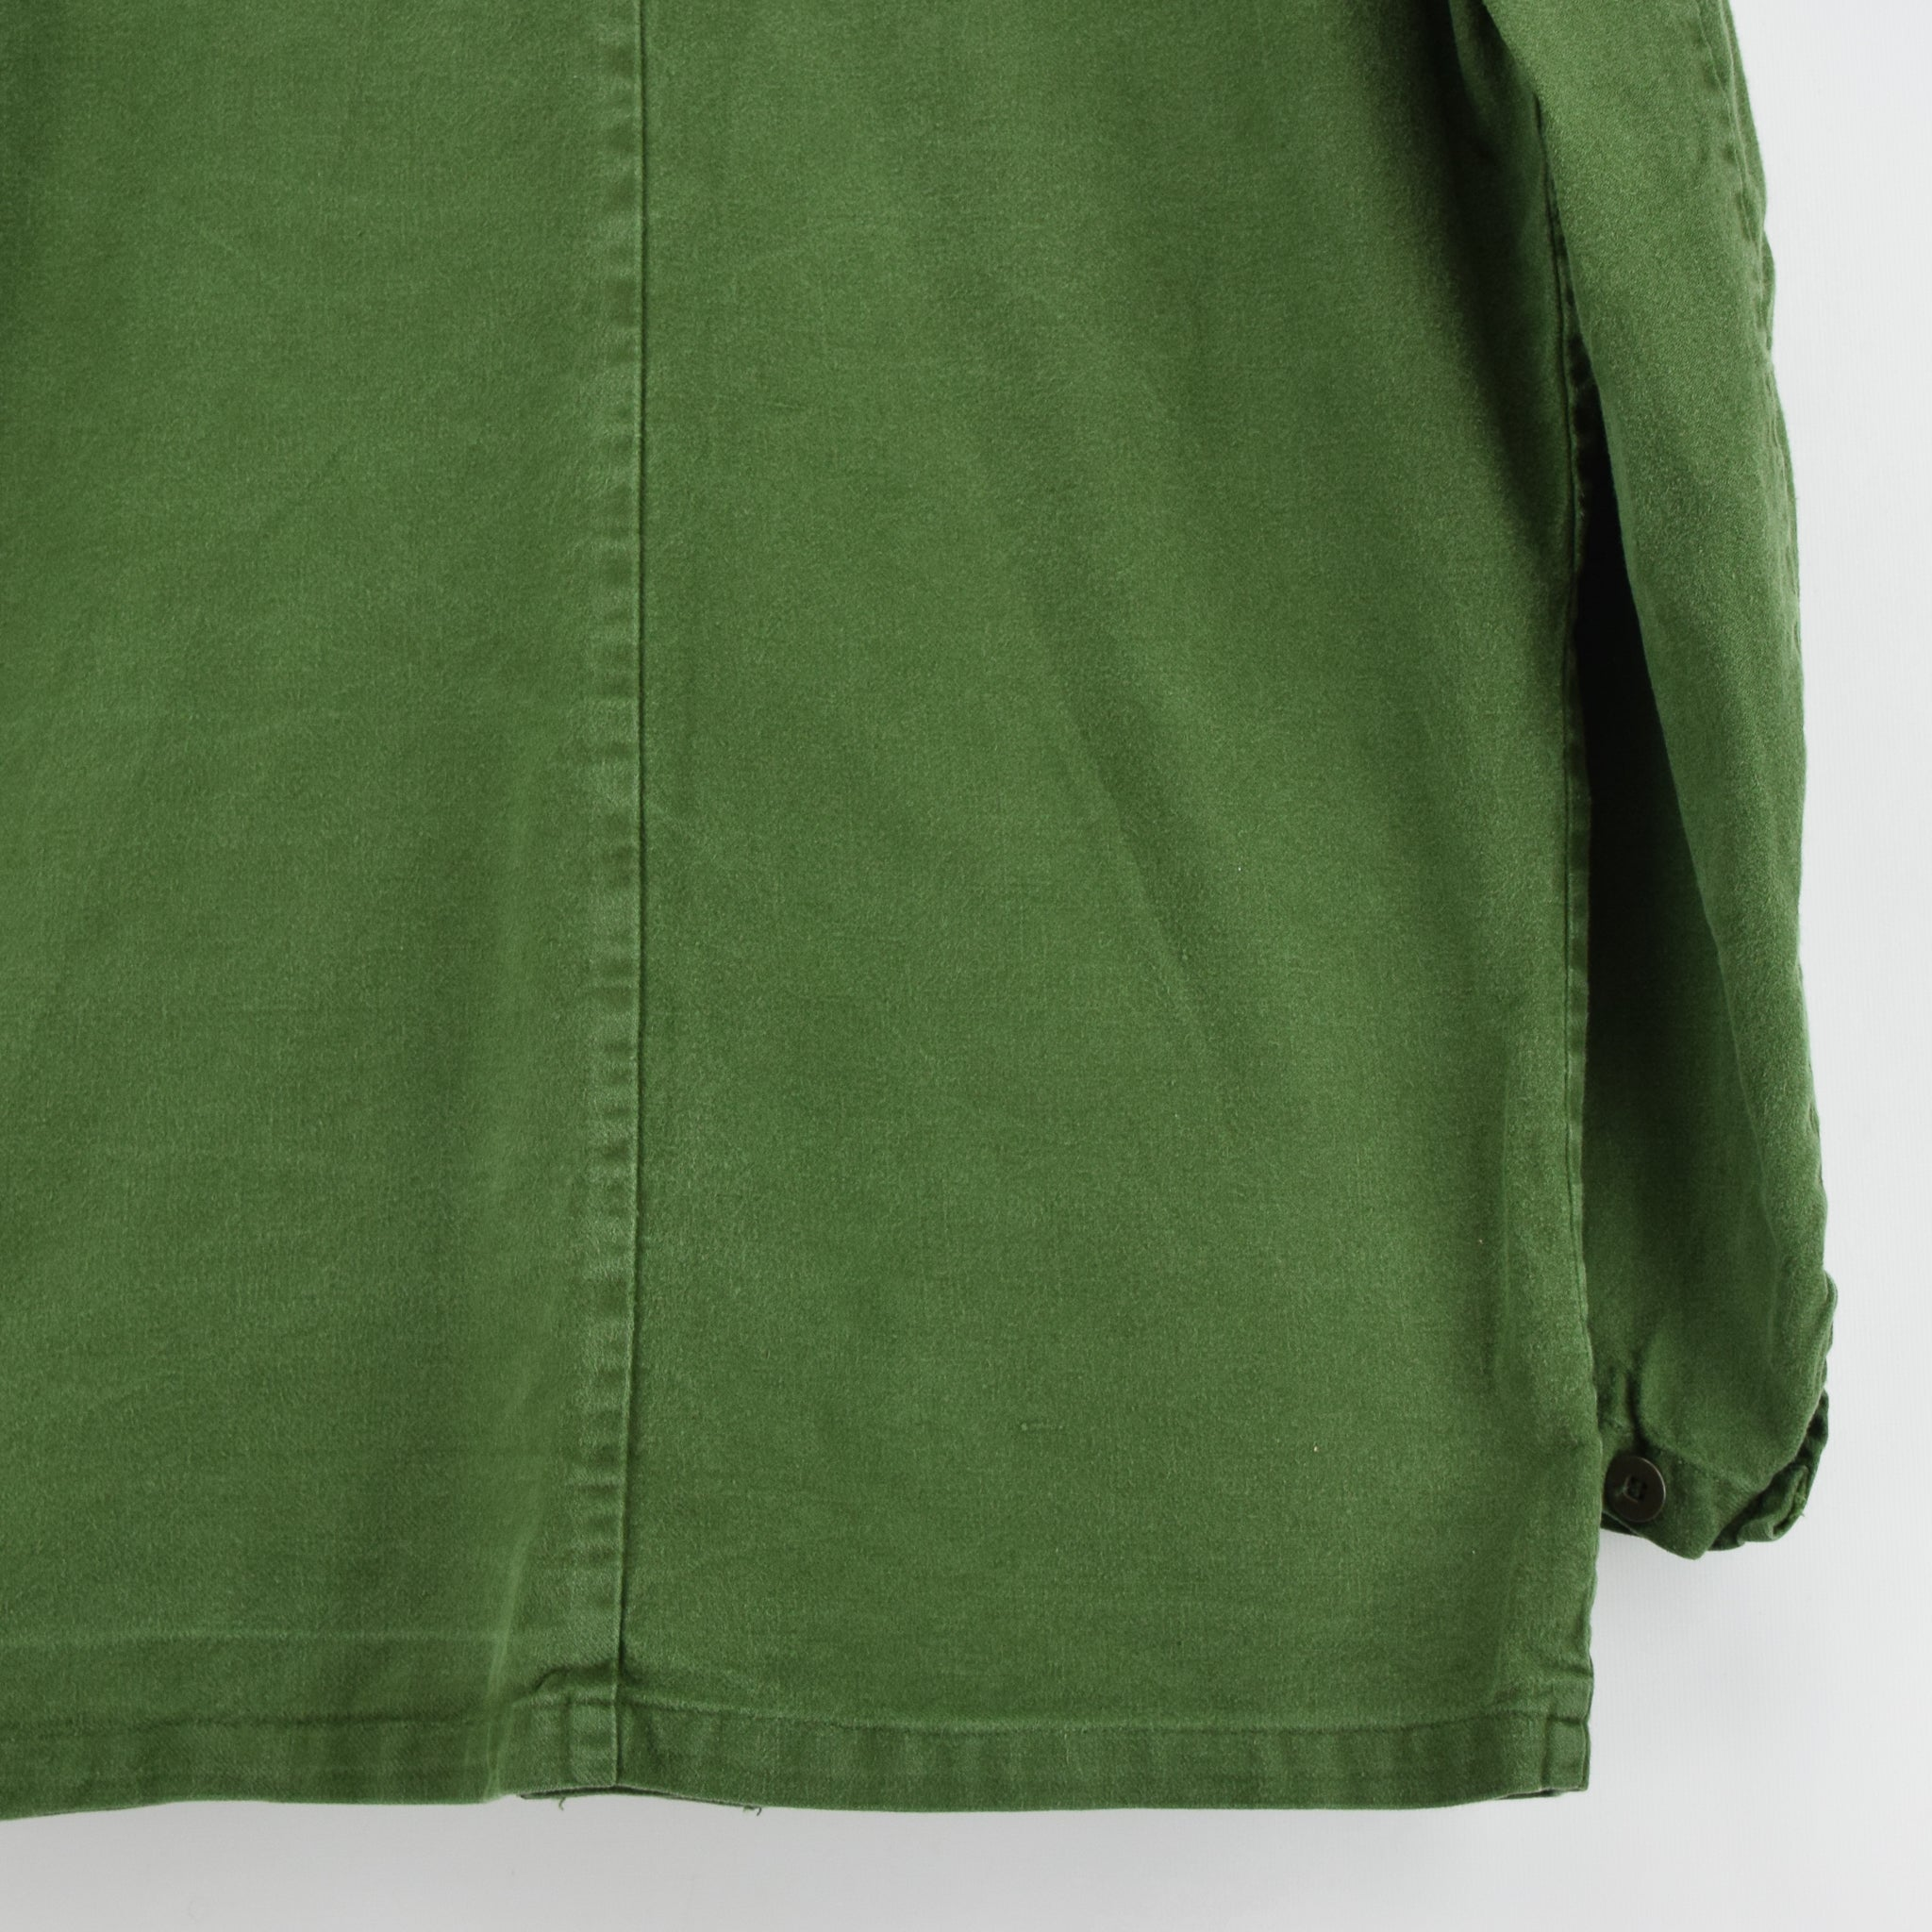 Vintage Swedish Worker Style Distressed Green Military Field Jacket M / L back hem